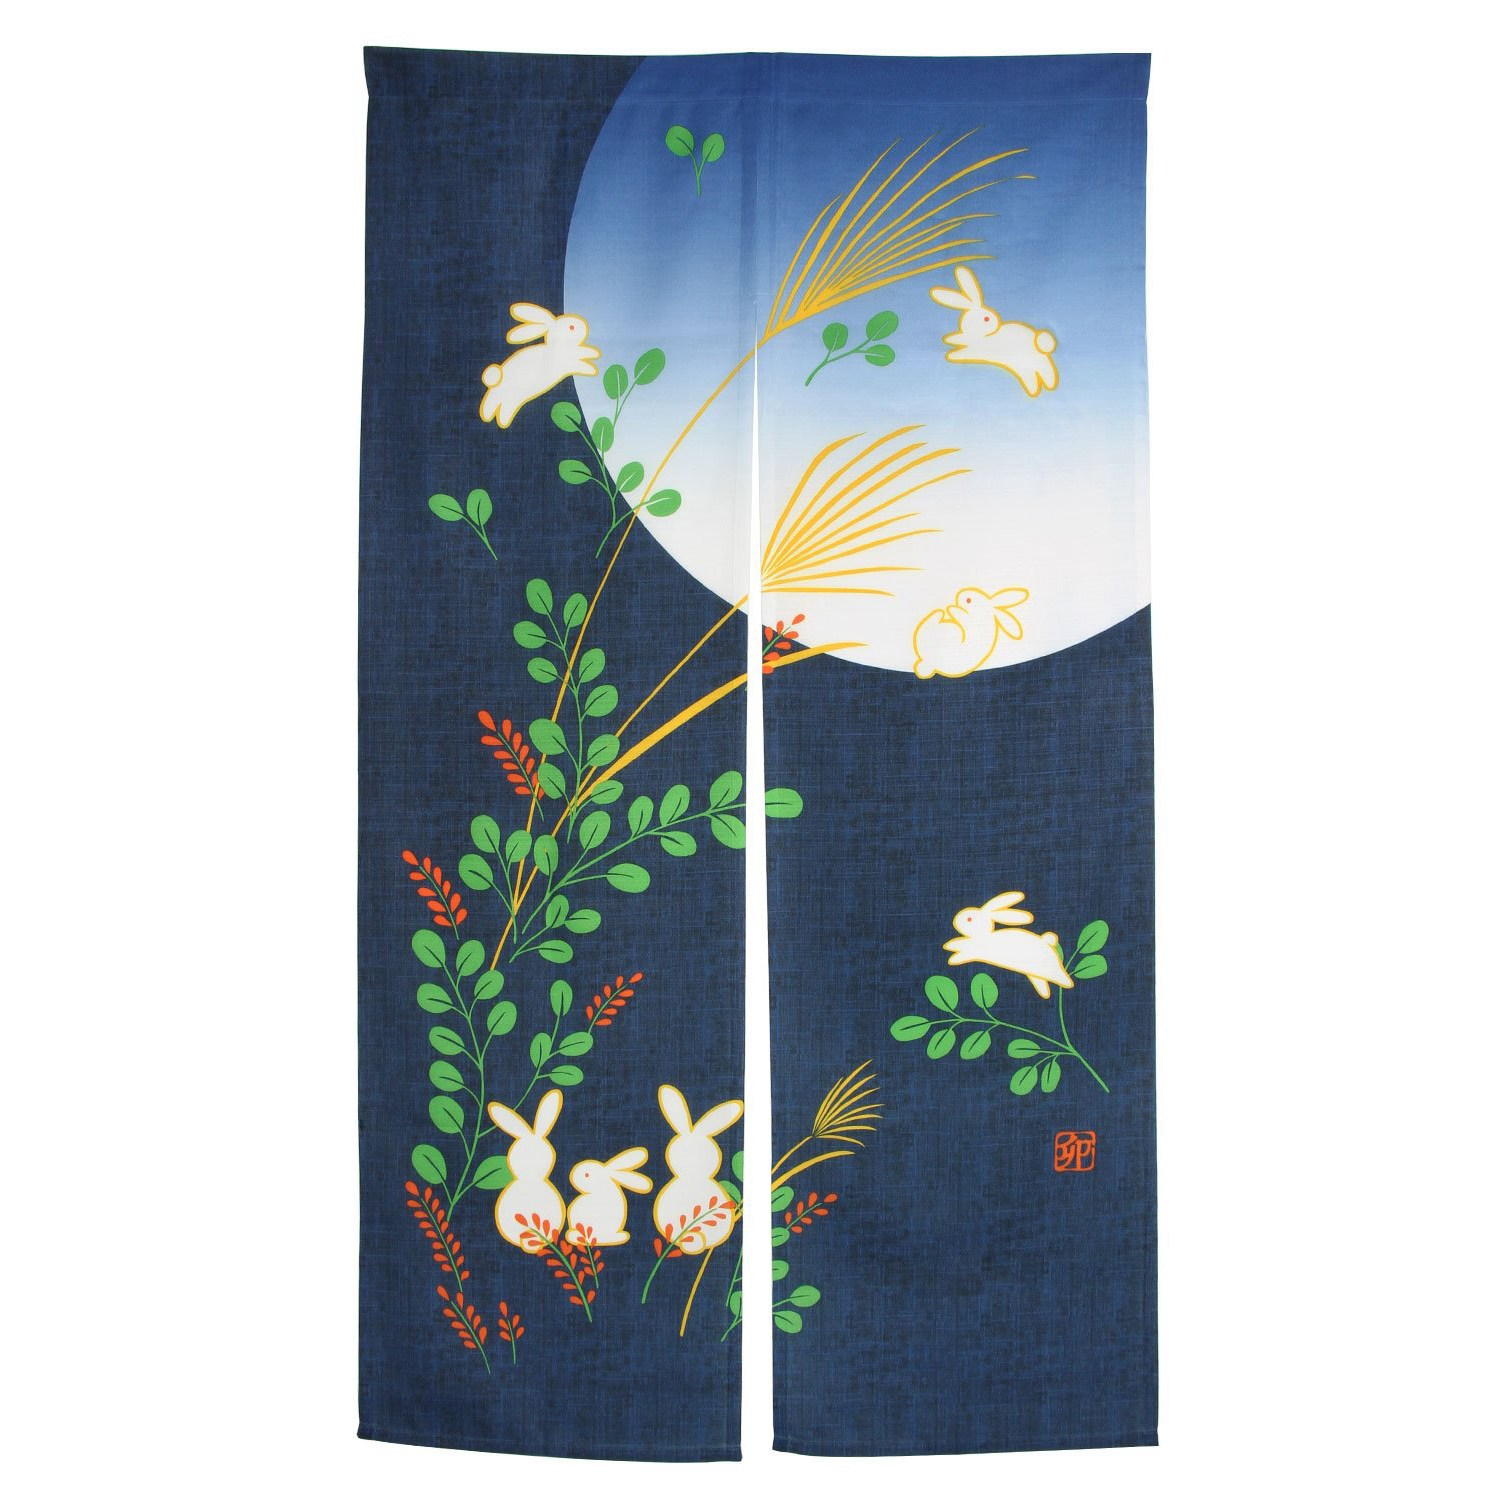 TOP!-Japanese Doorway Curtain Noren Rabbit Under Moon For Home Decoration 85X150Cm